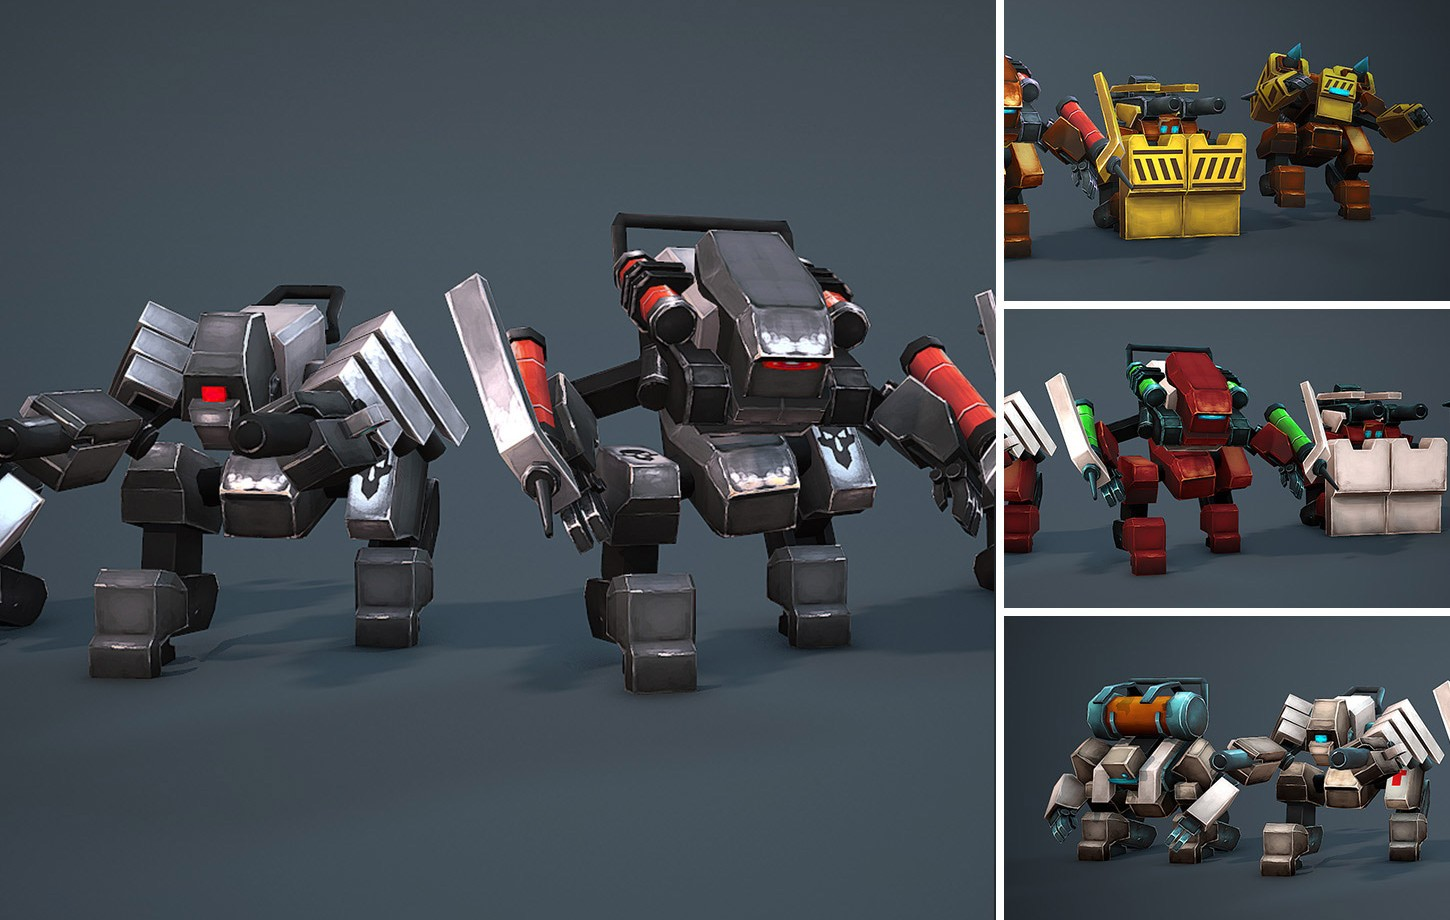 Animated Space Robots